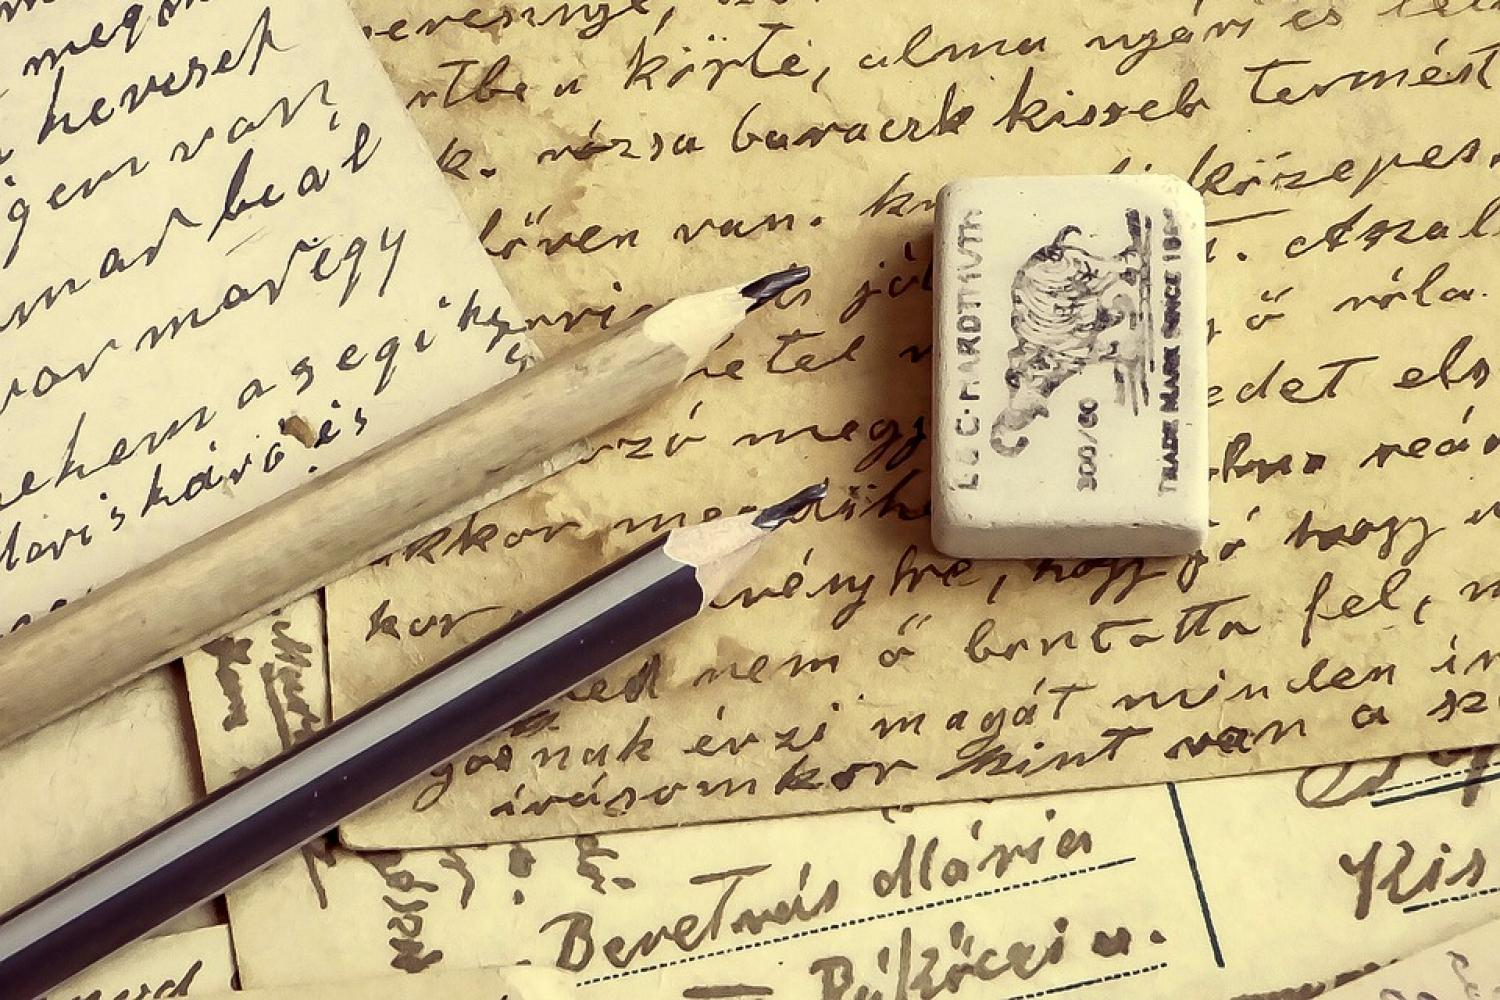 image of pencils, an eraser, and paper with cursive writing on it.